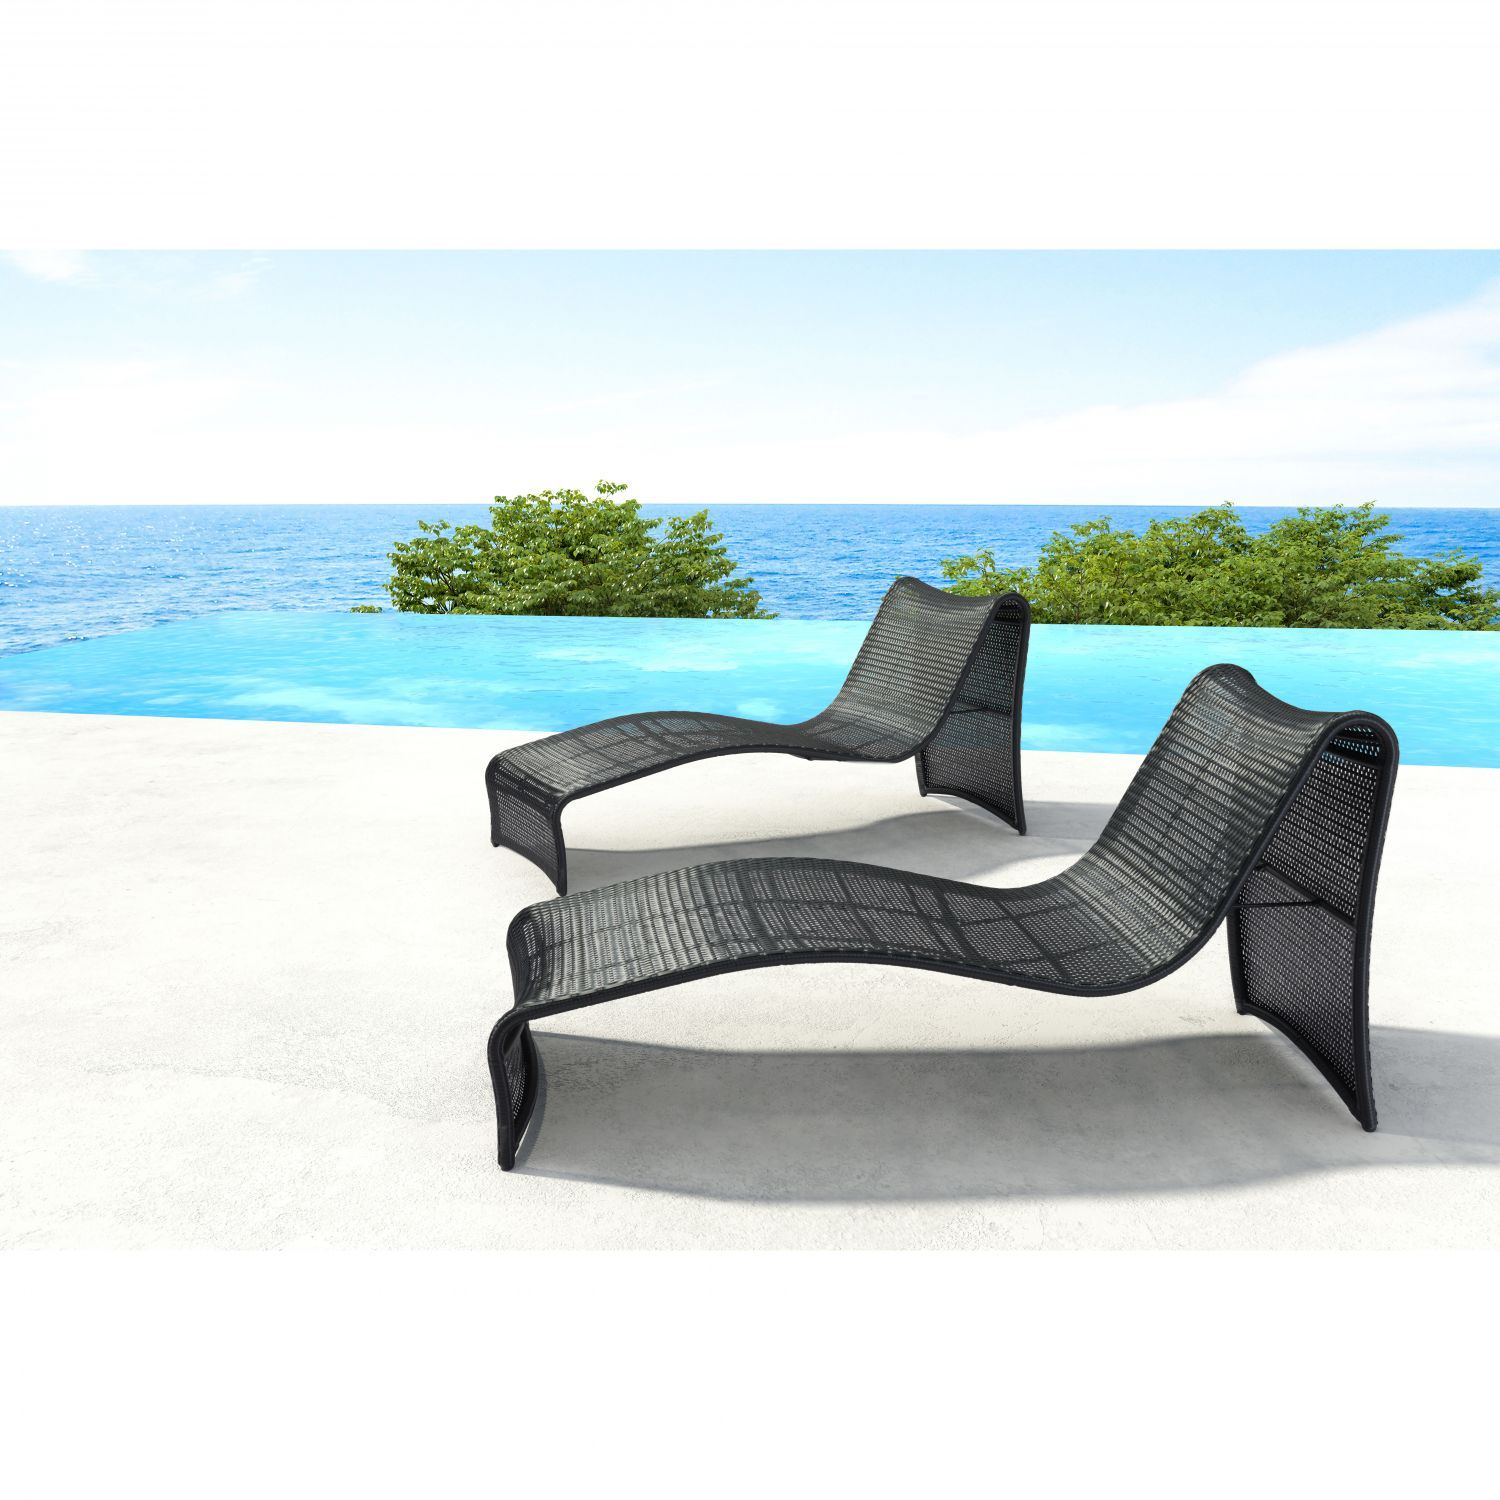 Rocky beach chaise lounge espresso 703842 zuo modern for Beach chaise lounger